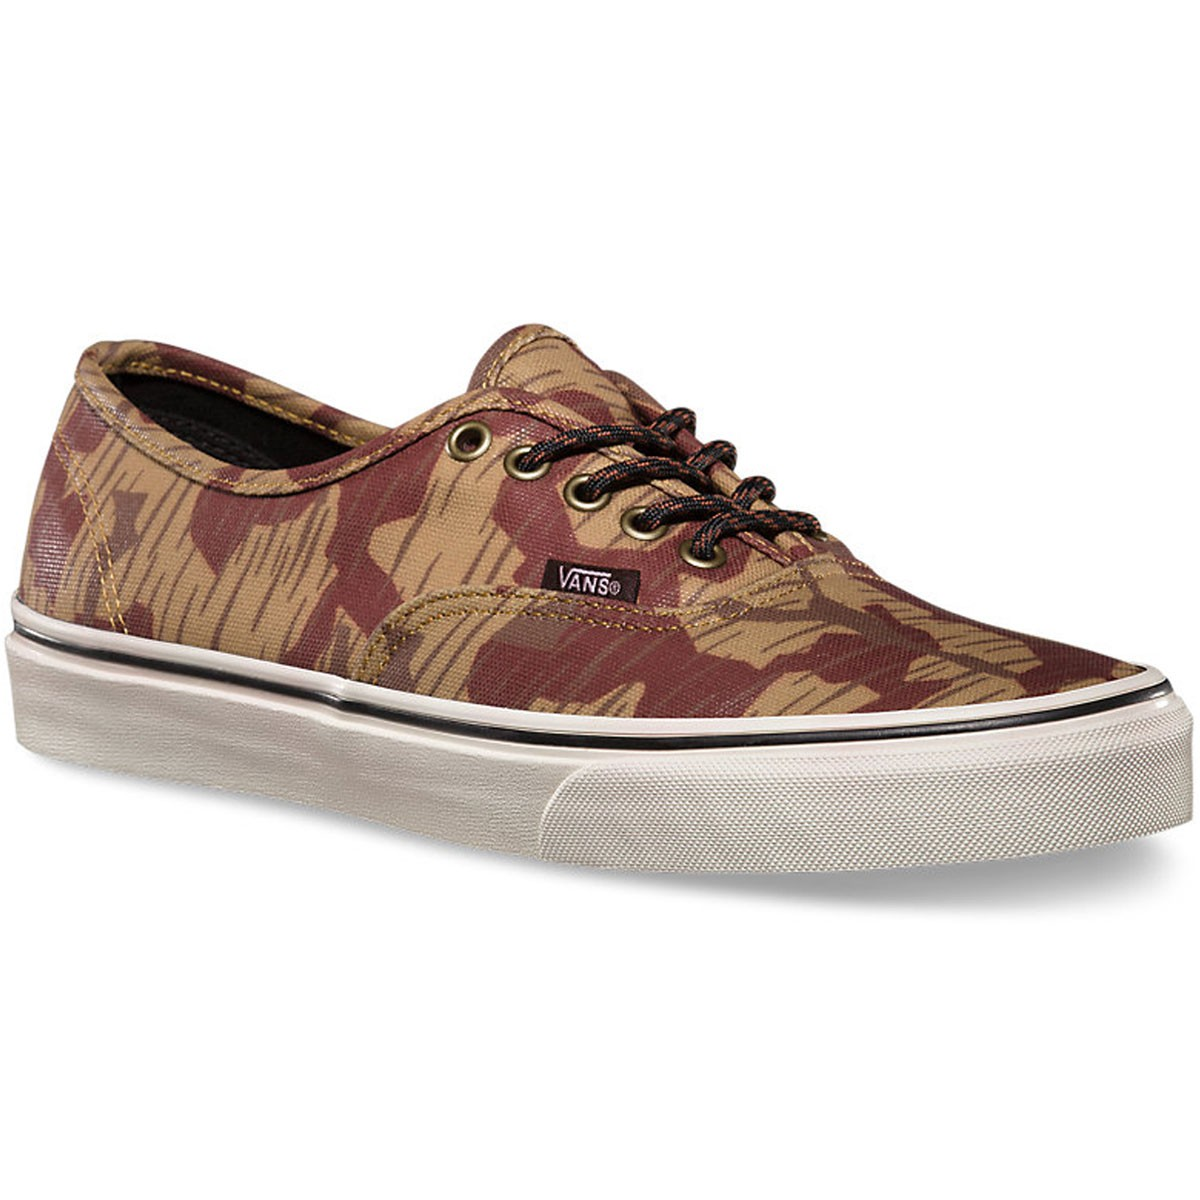 Vans Authentic Waxed Shoes - Geo Camo - 9.5